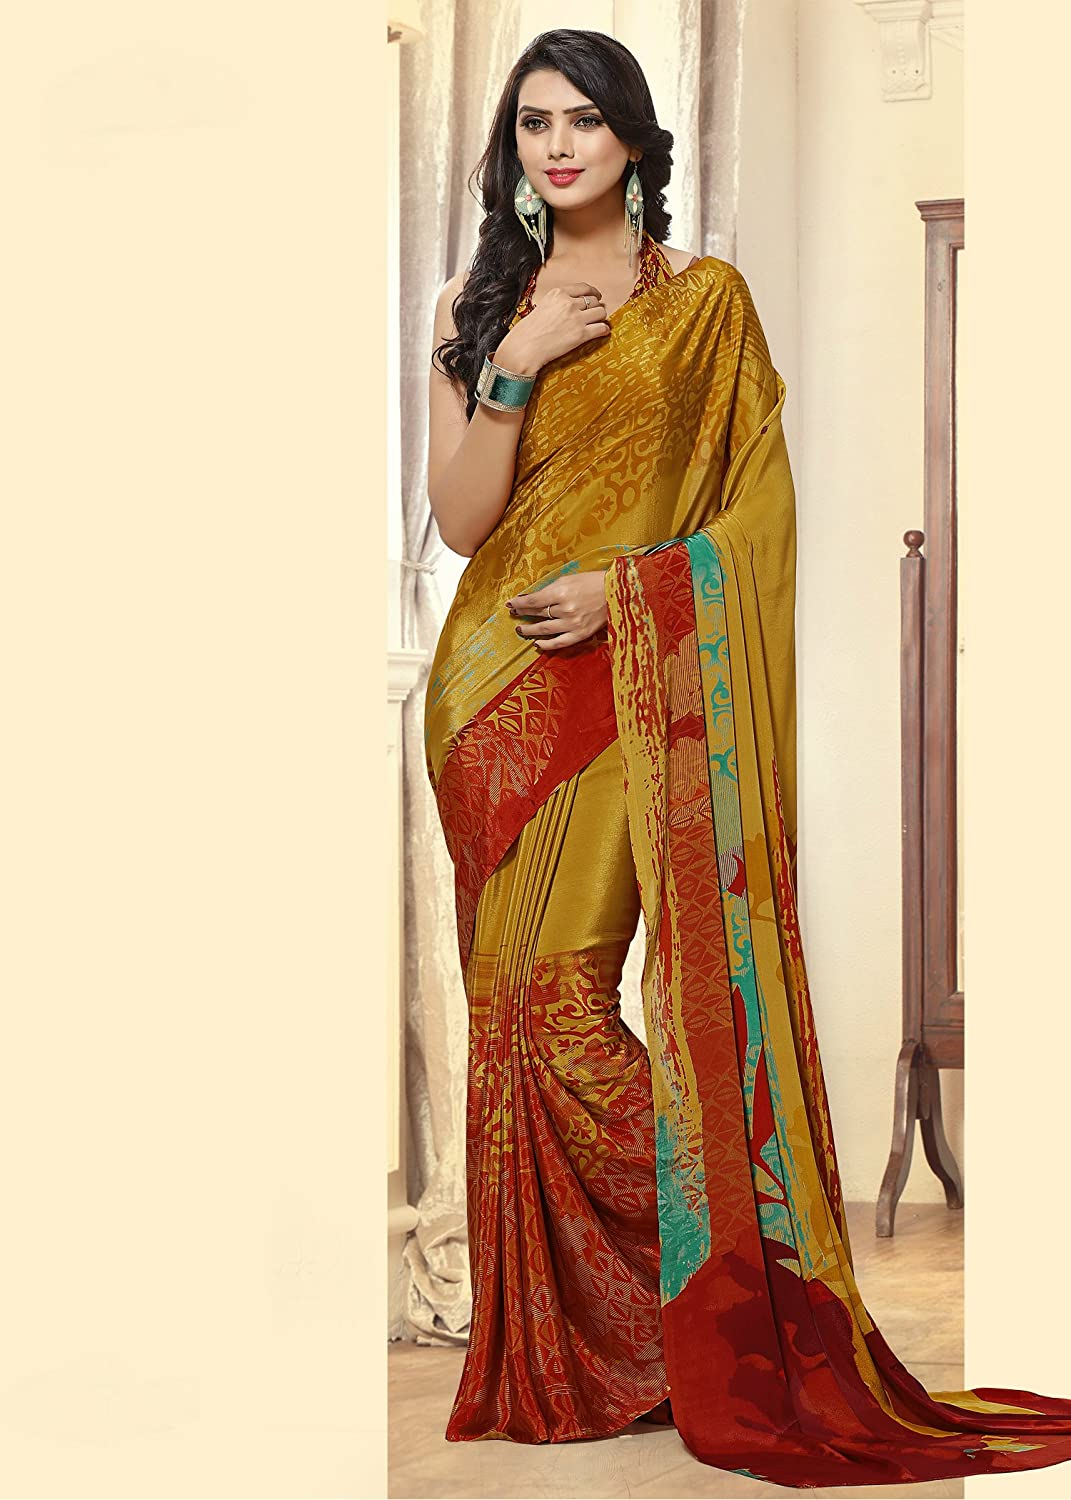 564ef303e5 Amazon.com: Jaanvi fashion Women's Crepe Printed Saree (Orange): Clothing